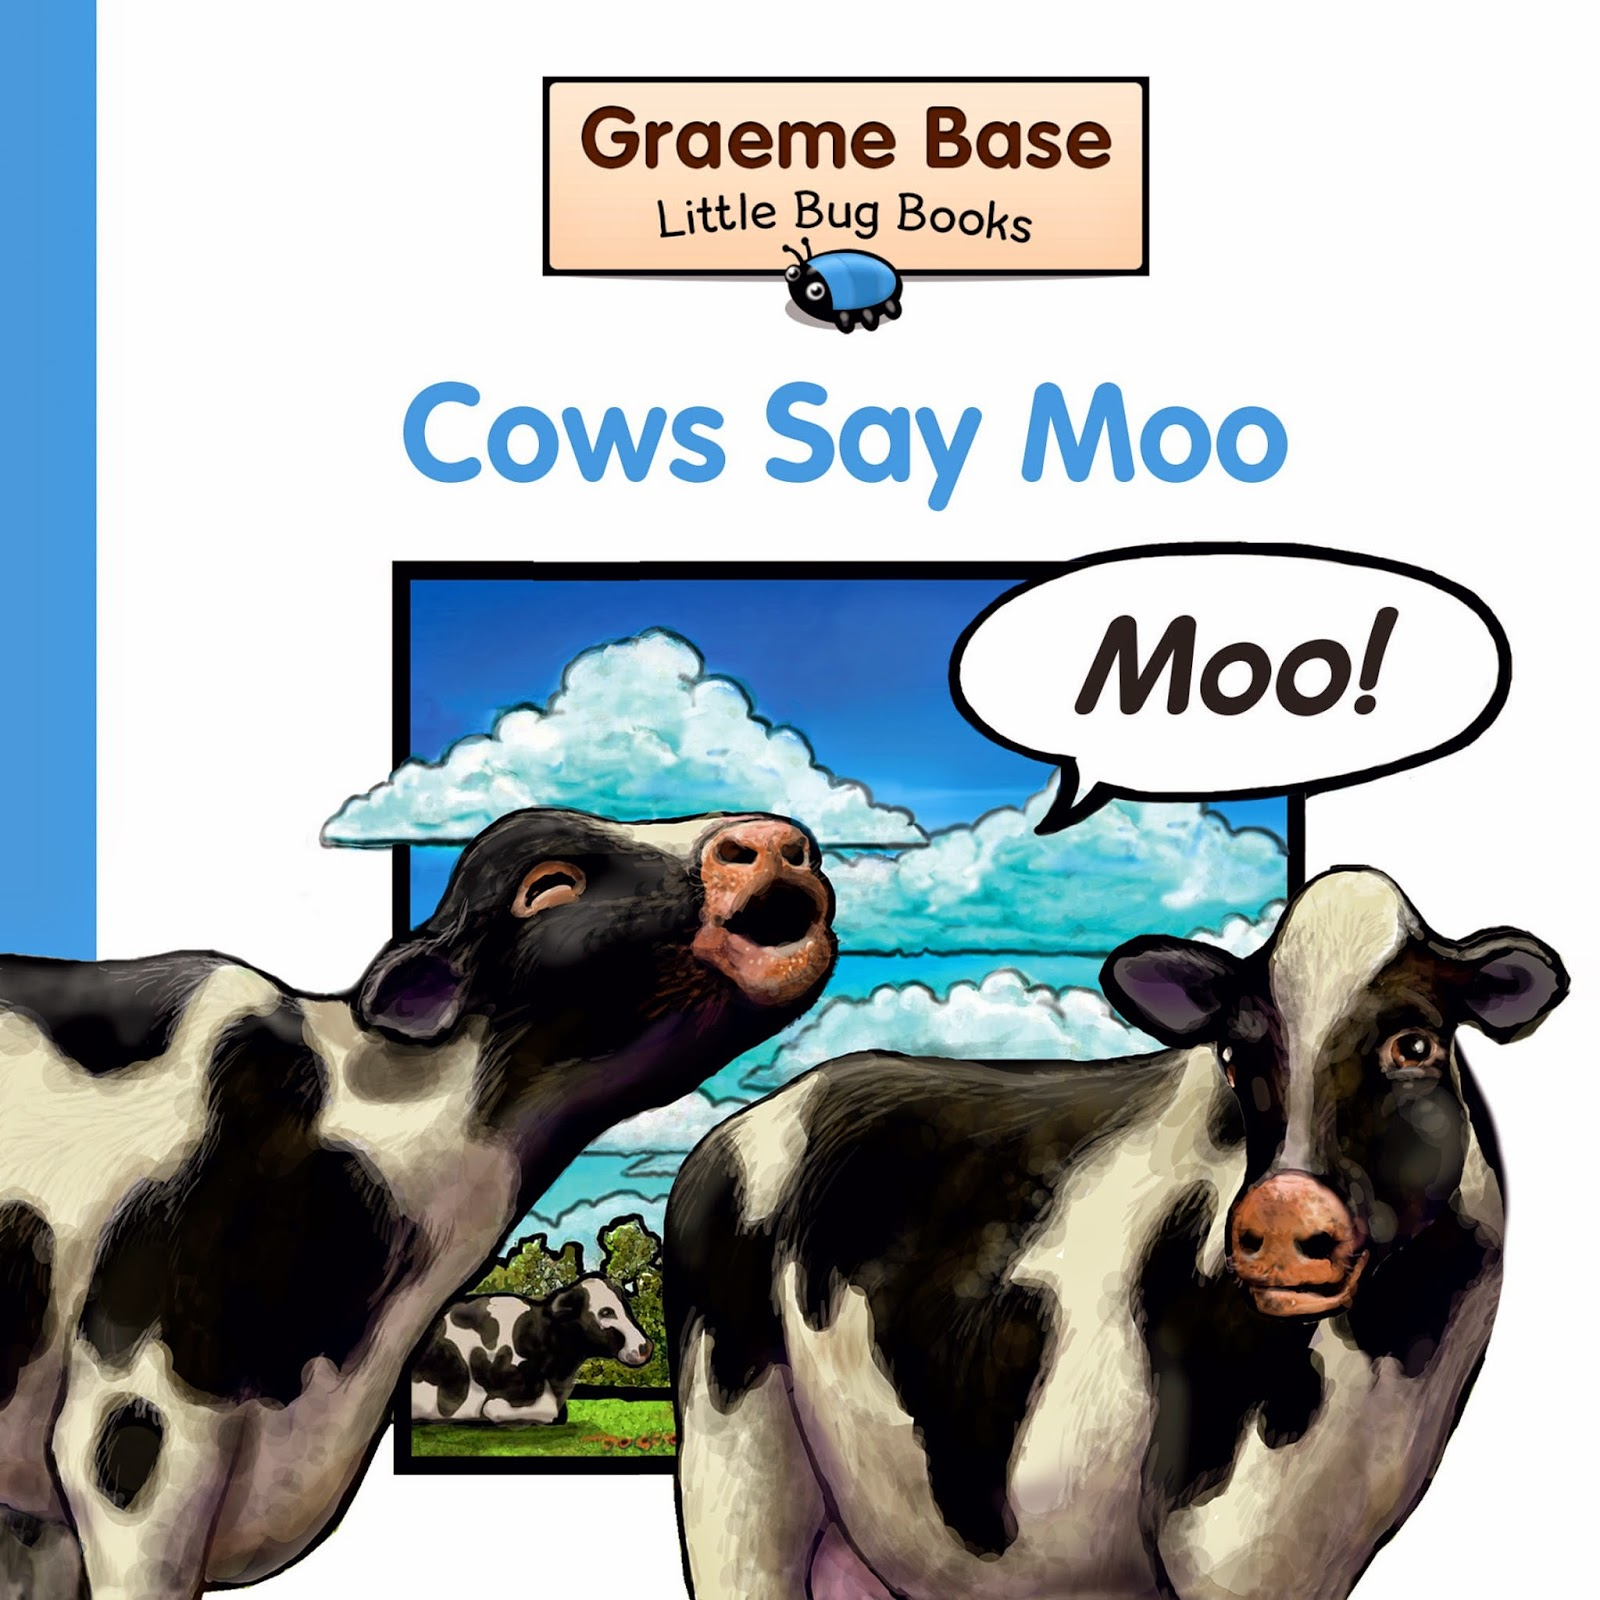 Review of Cows Say Moo by Graeme Base